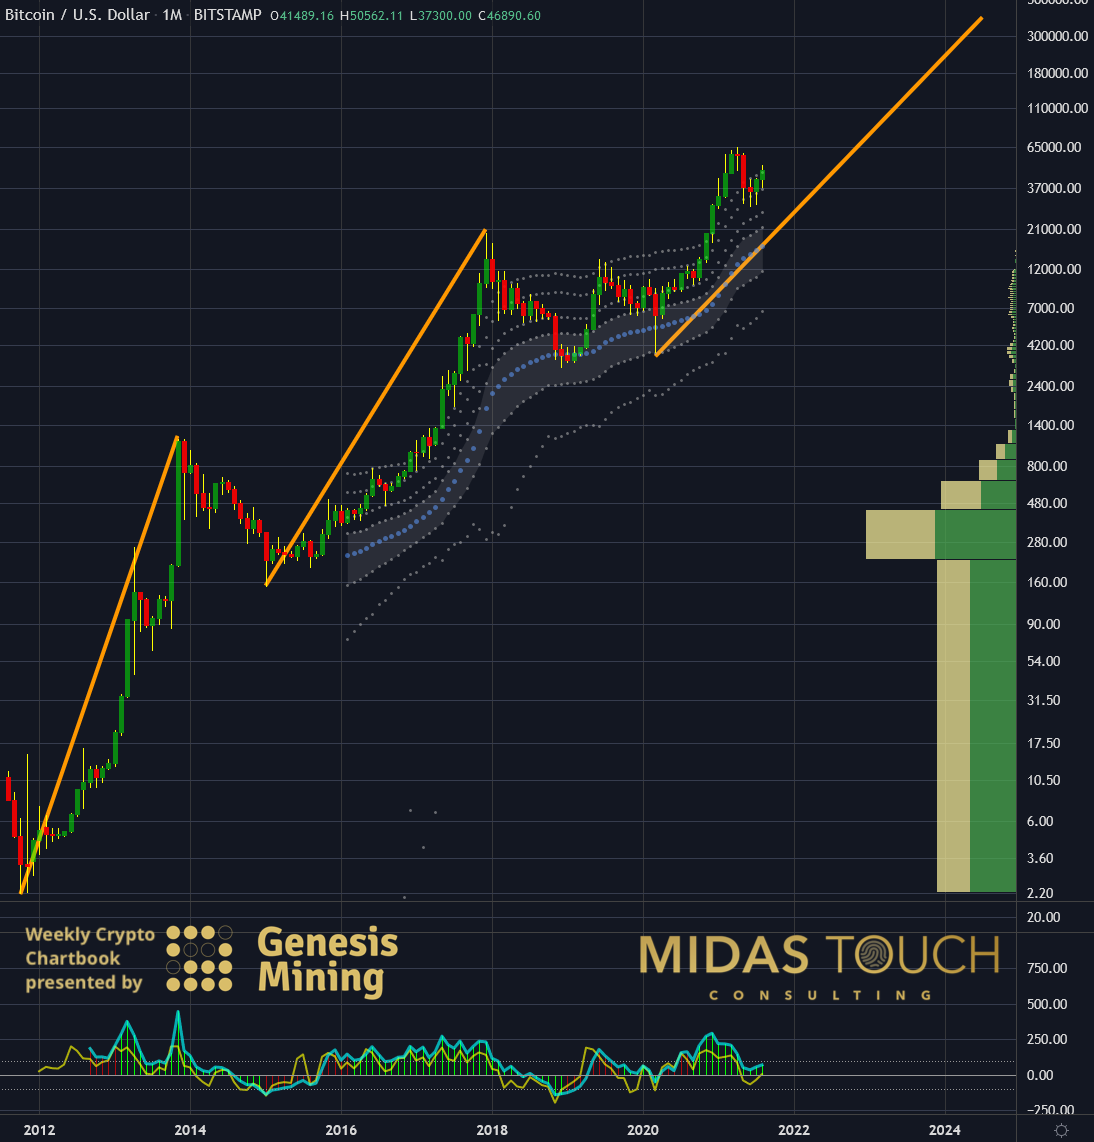 Bitcoin in US-Dollar, monthly chart as of August 31st, 2021. The Bitcoin train left the station